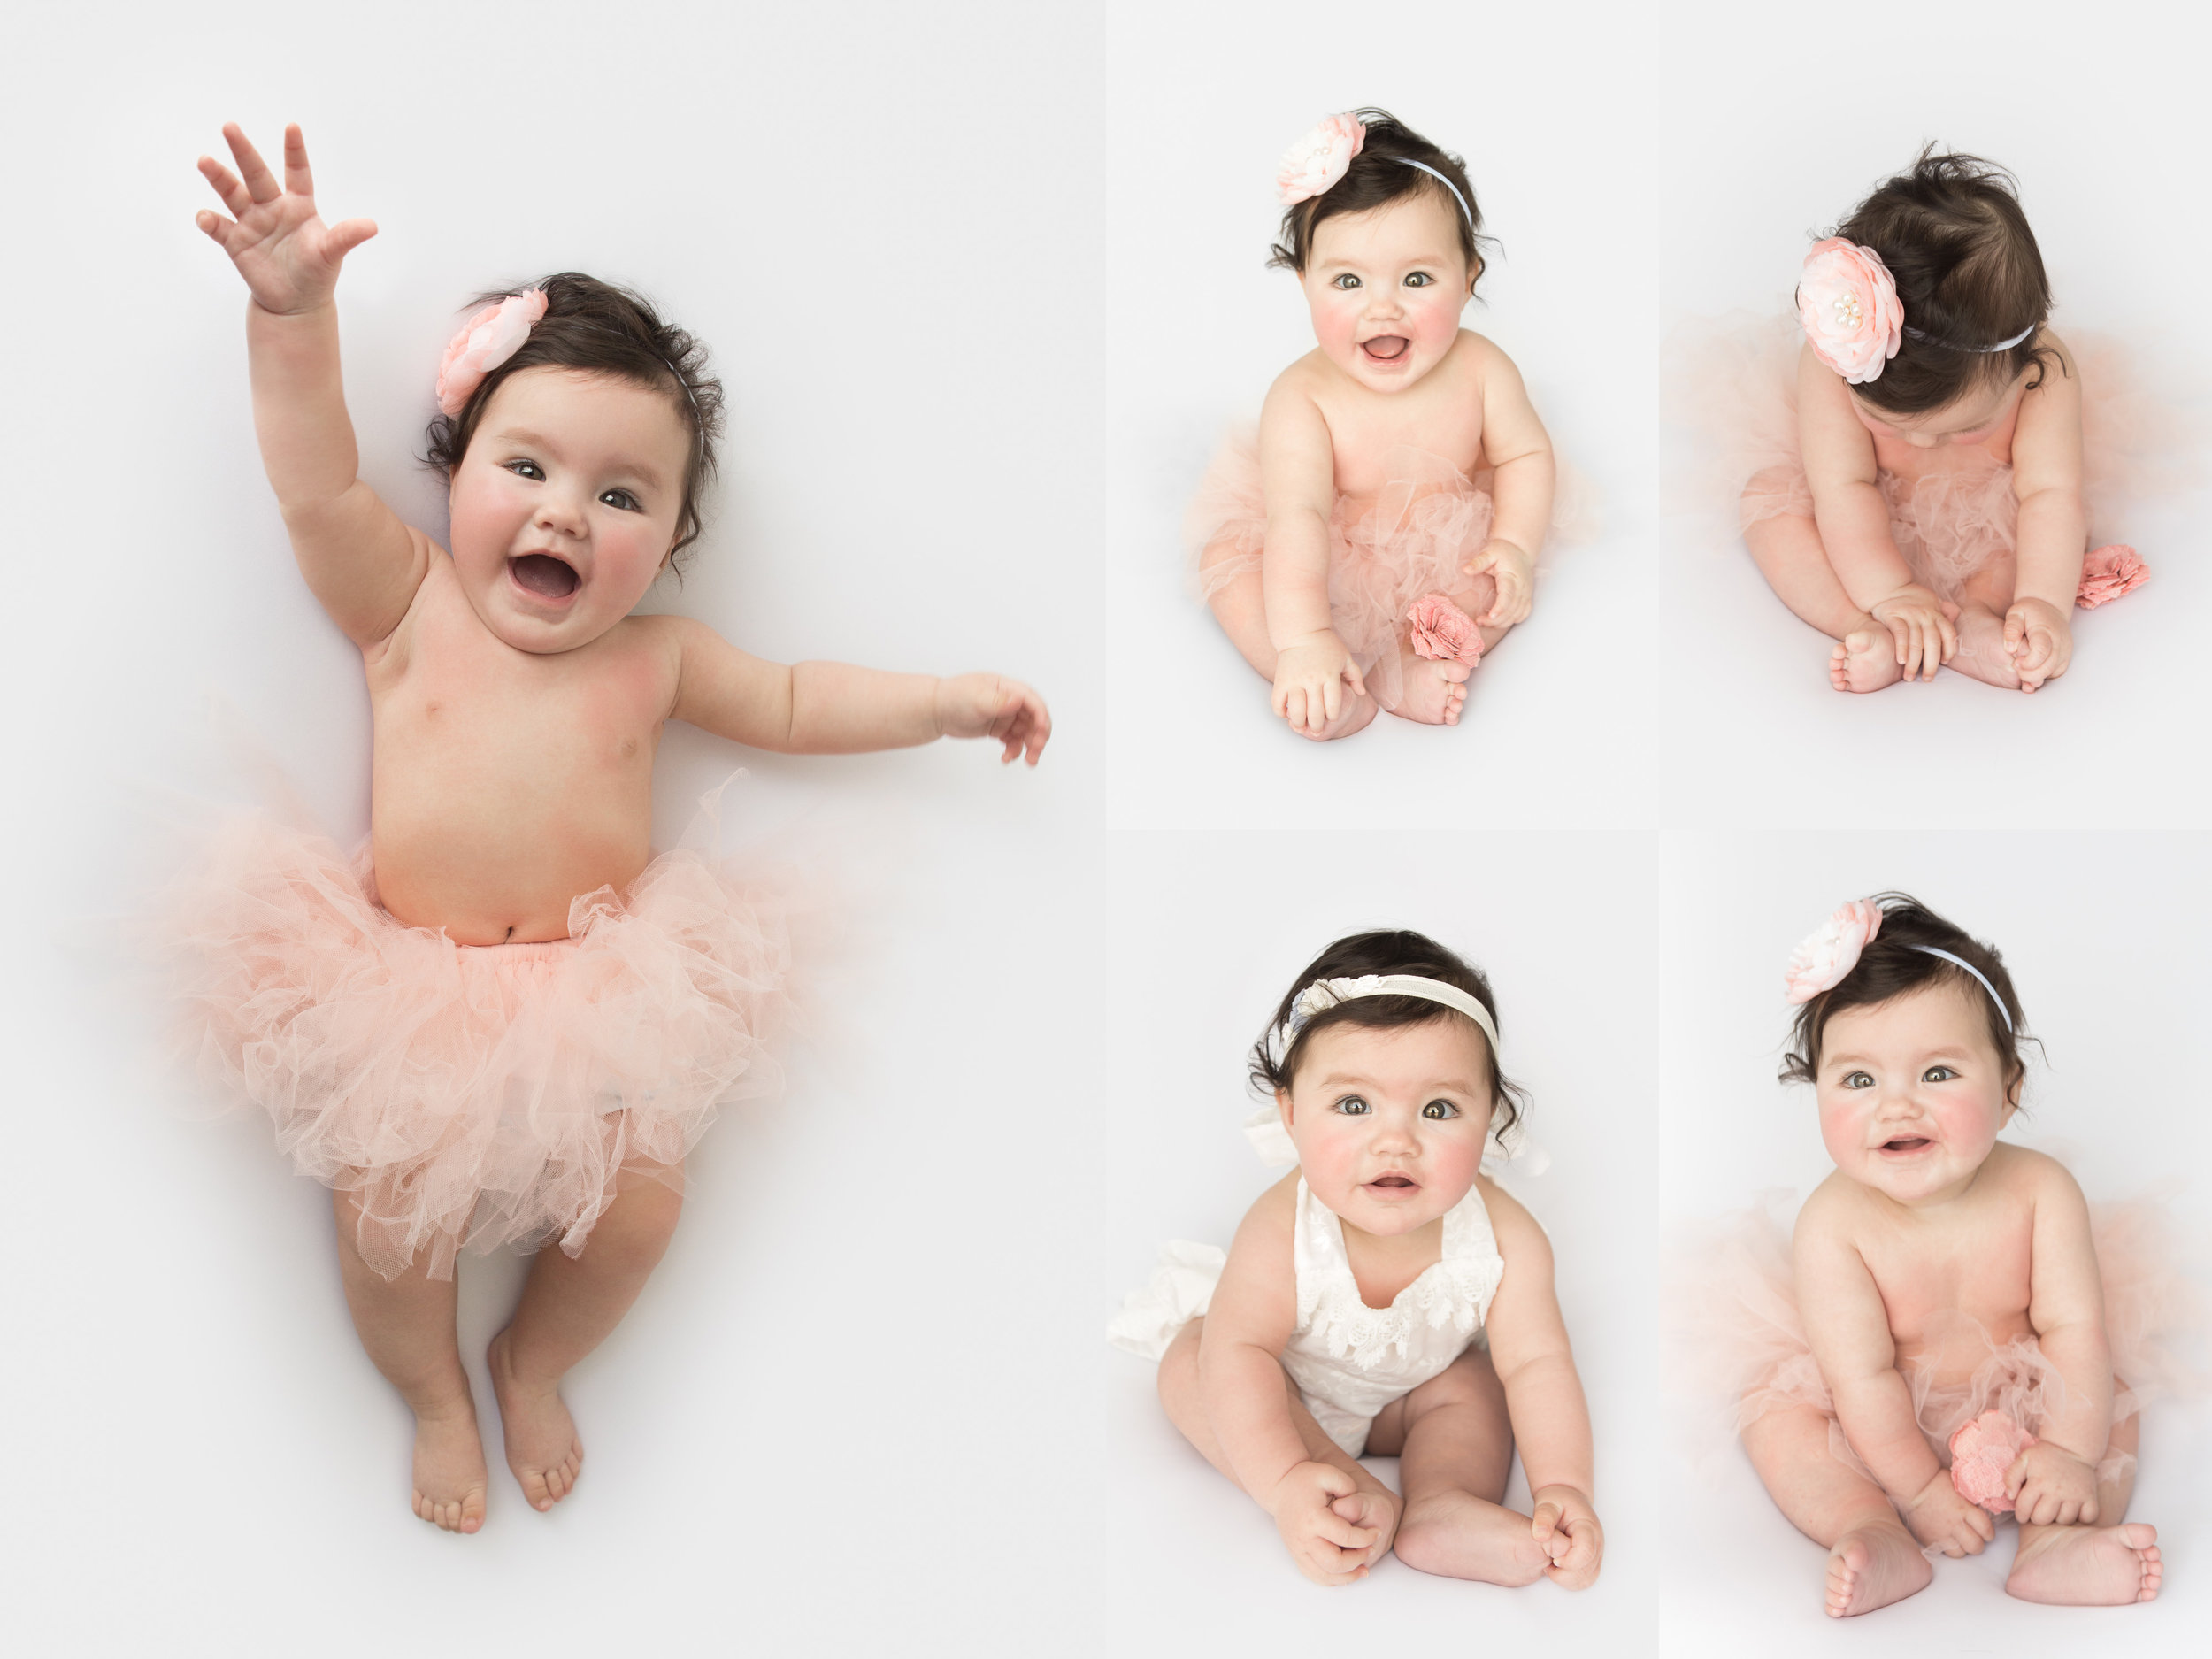 Six-month-old-baby-photos.jpg